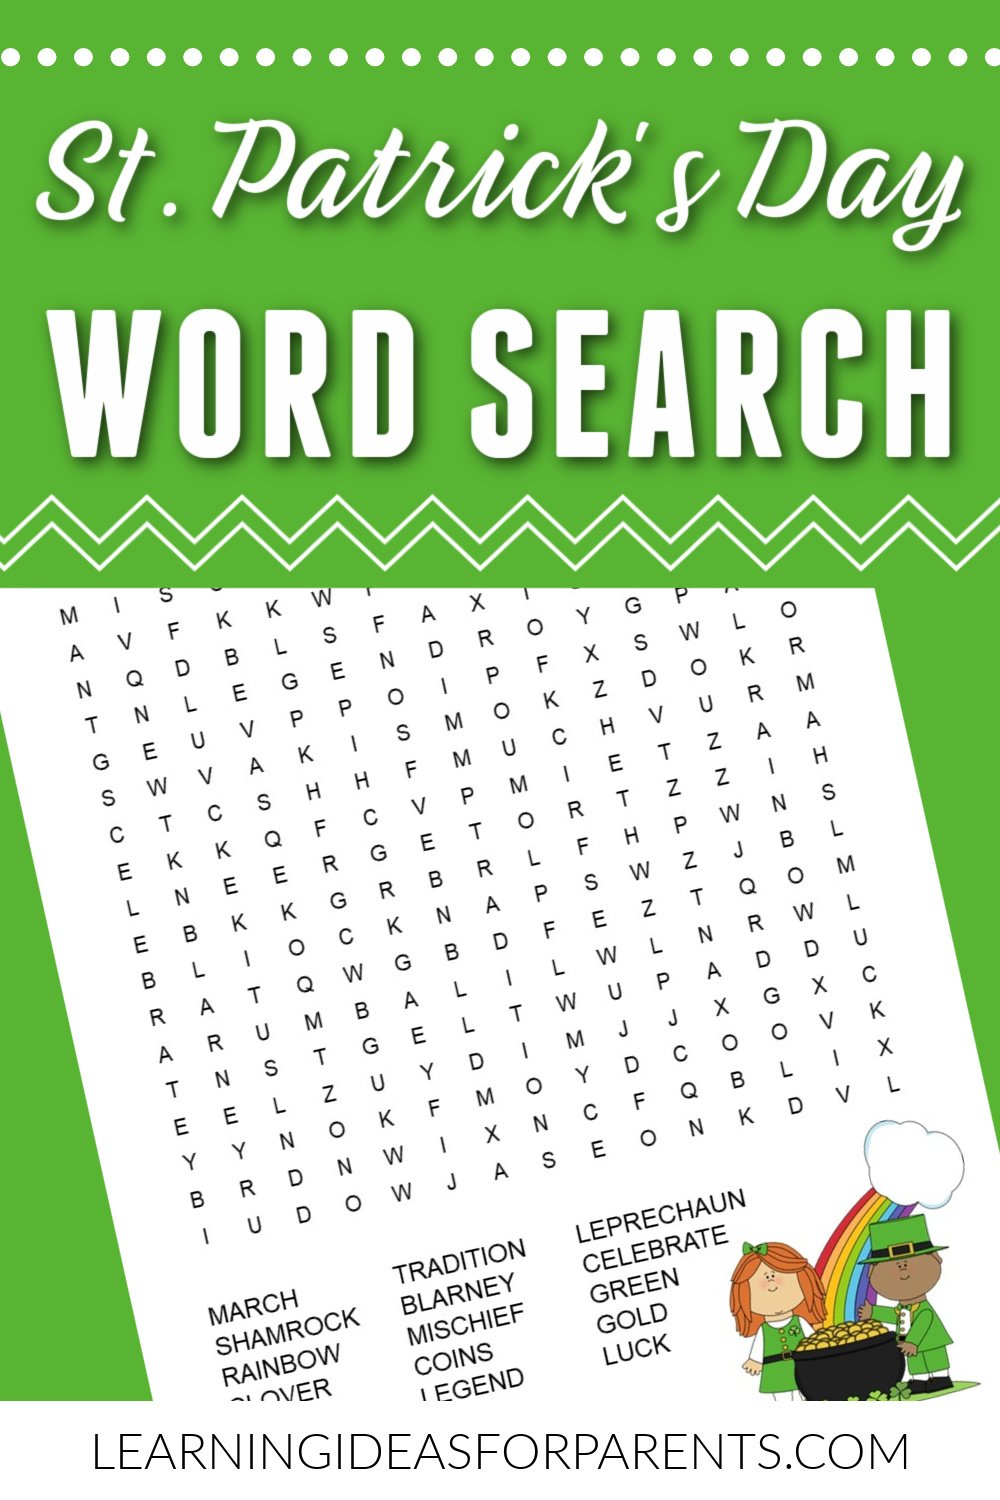 Free printable St. Patrick's Day word search for kids